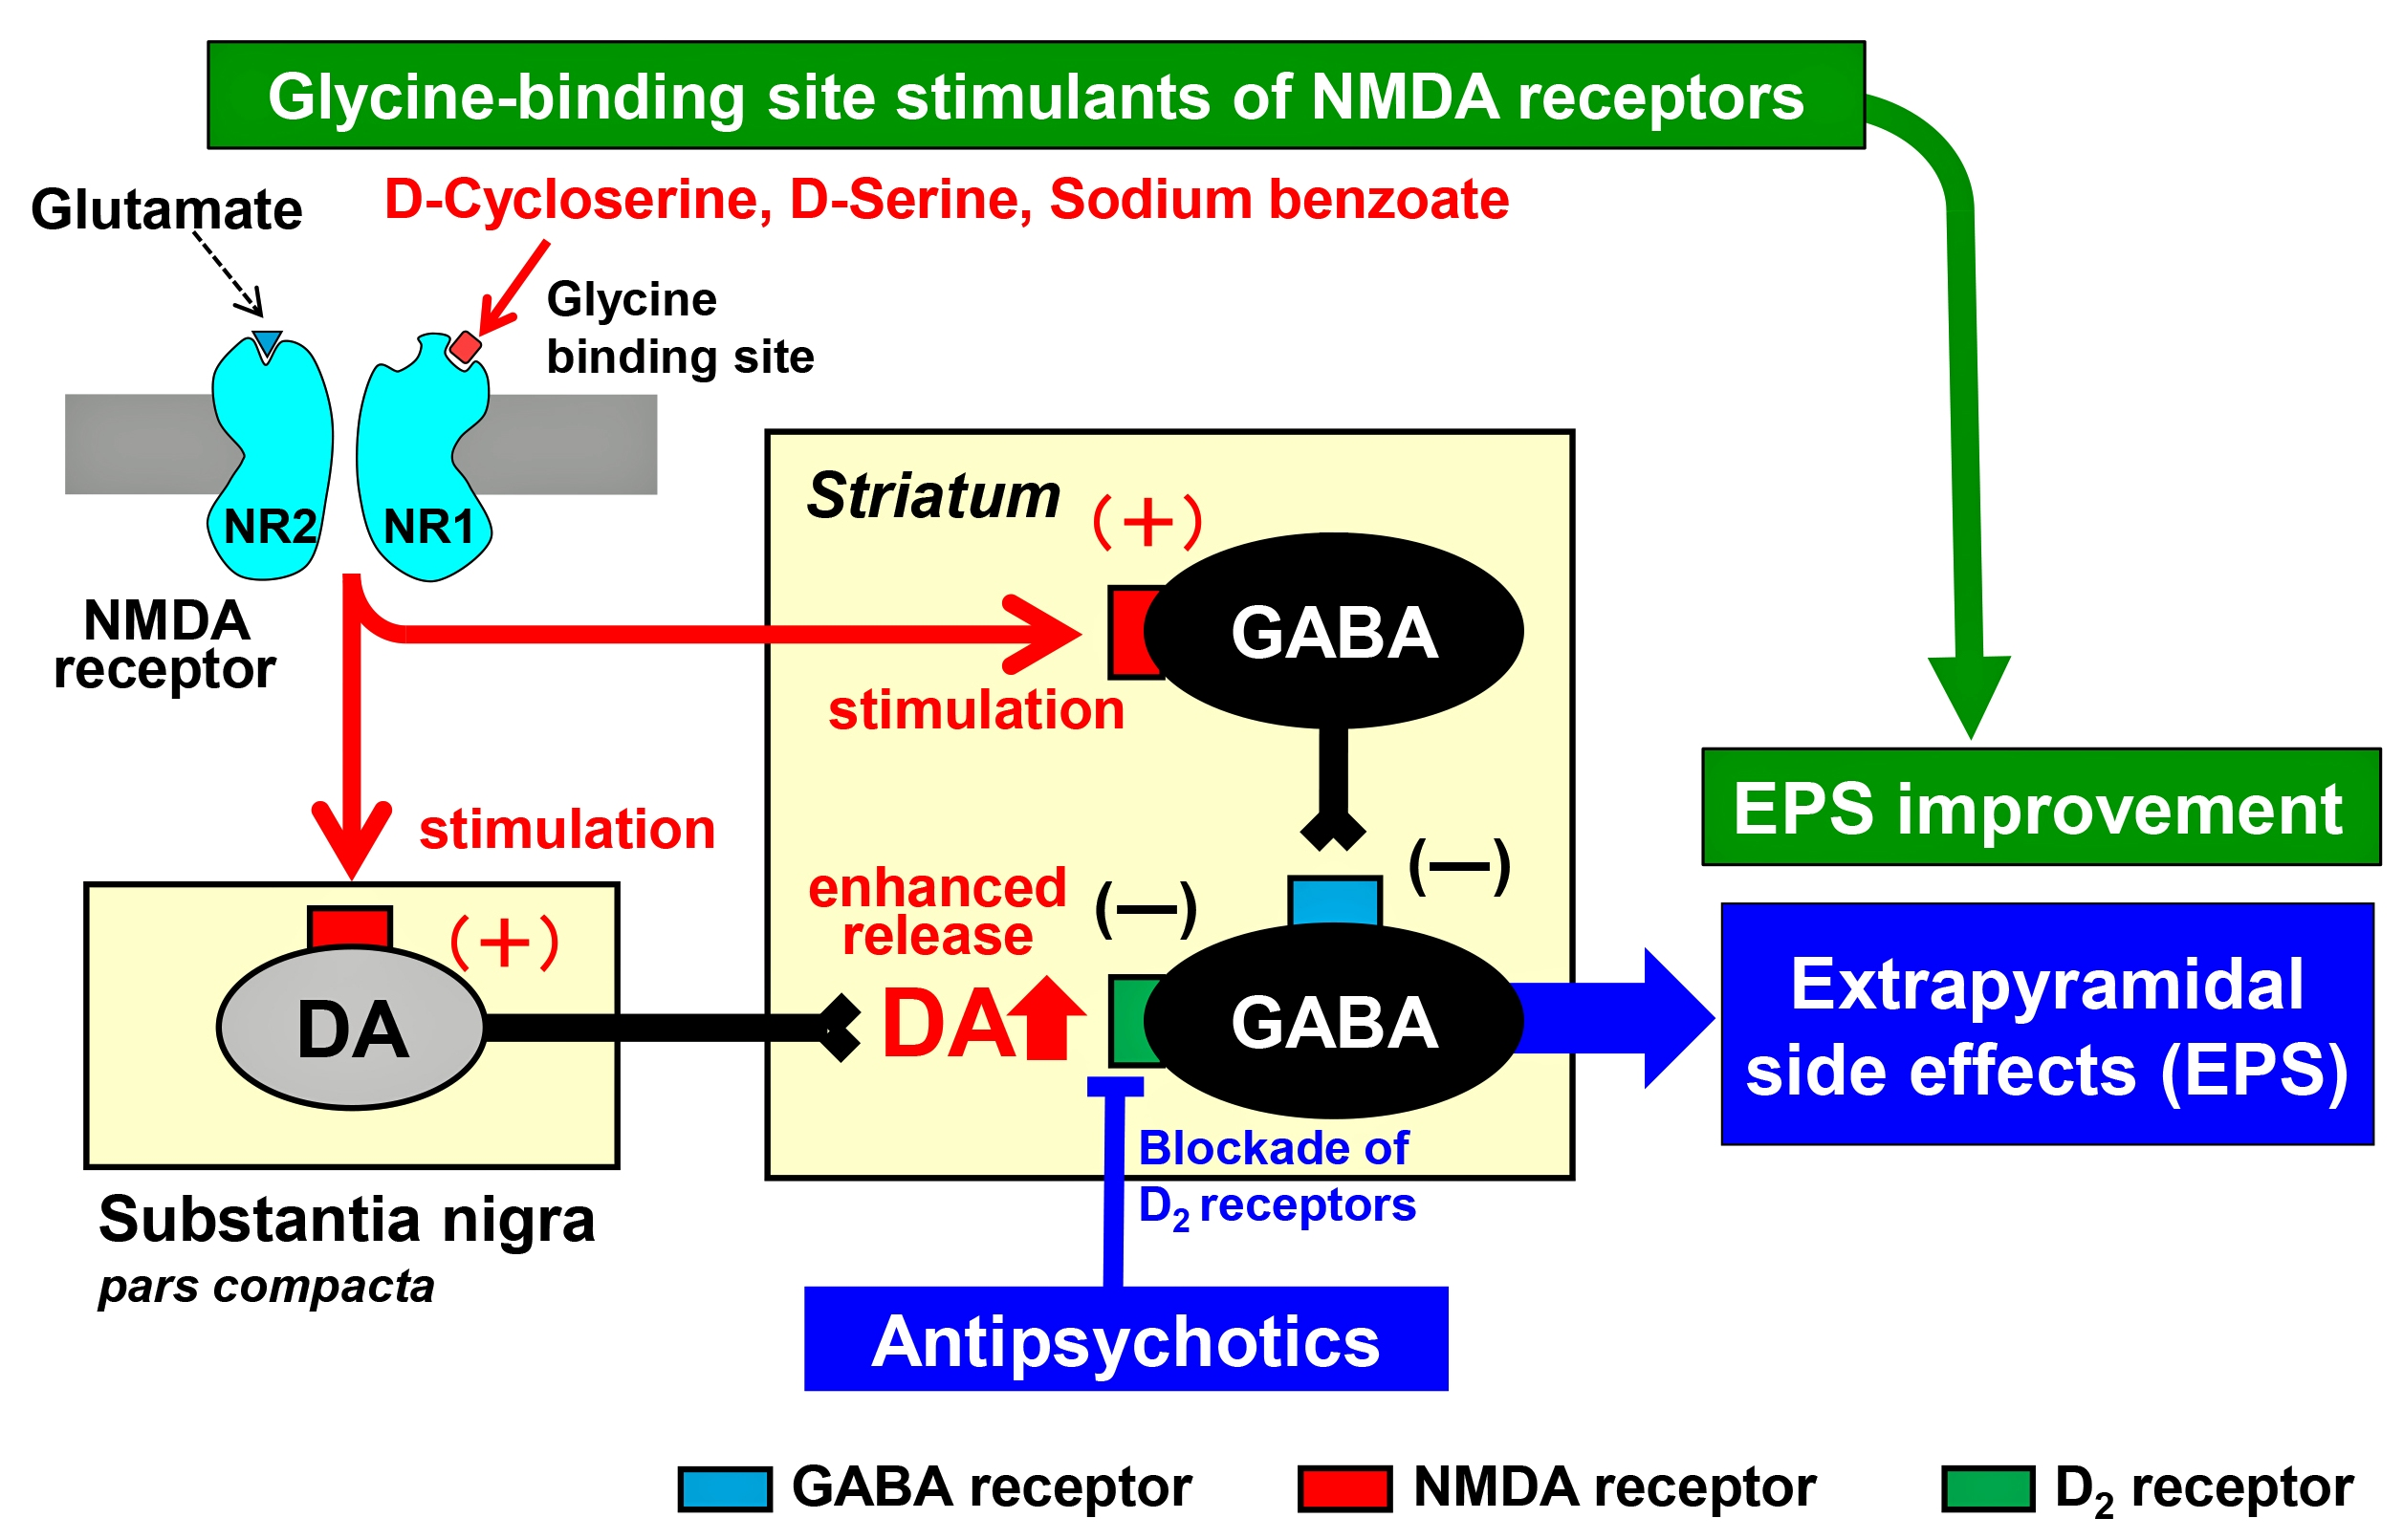 IJMS | Free Full-Text | Glycine-Binding Site Stimulants of NMDA